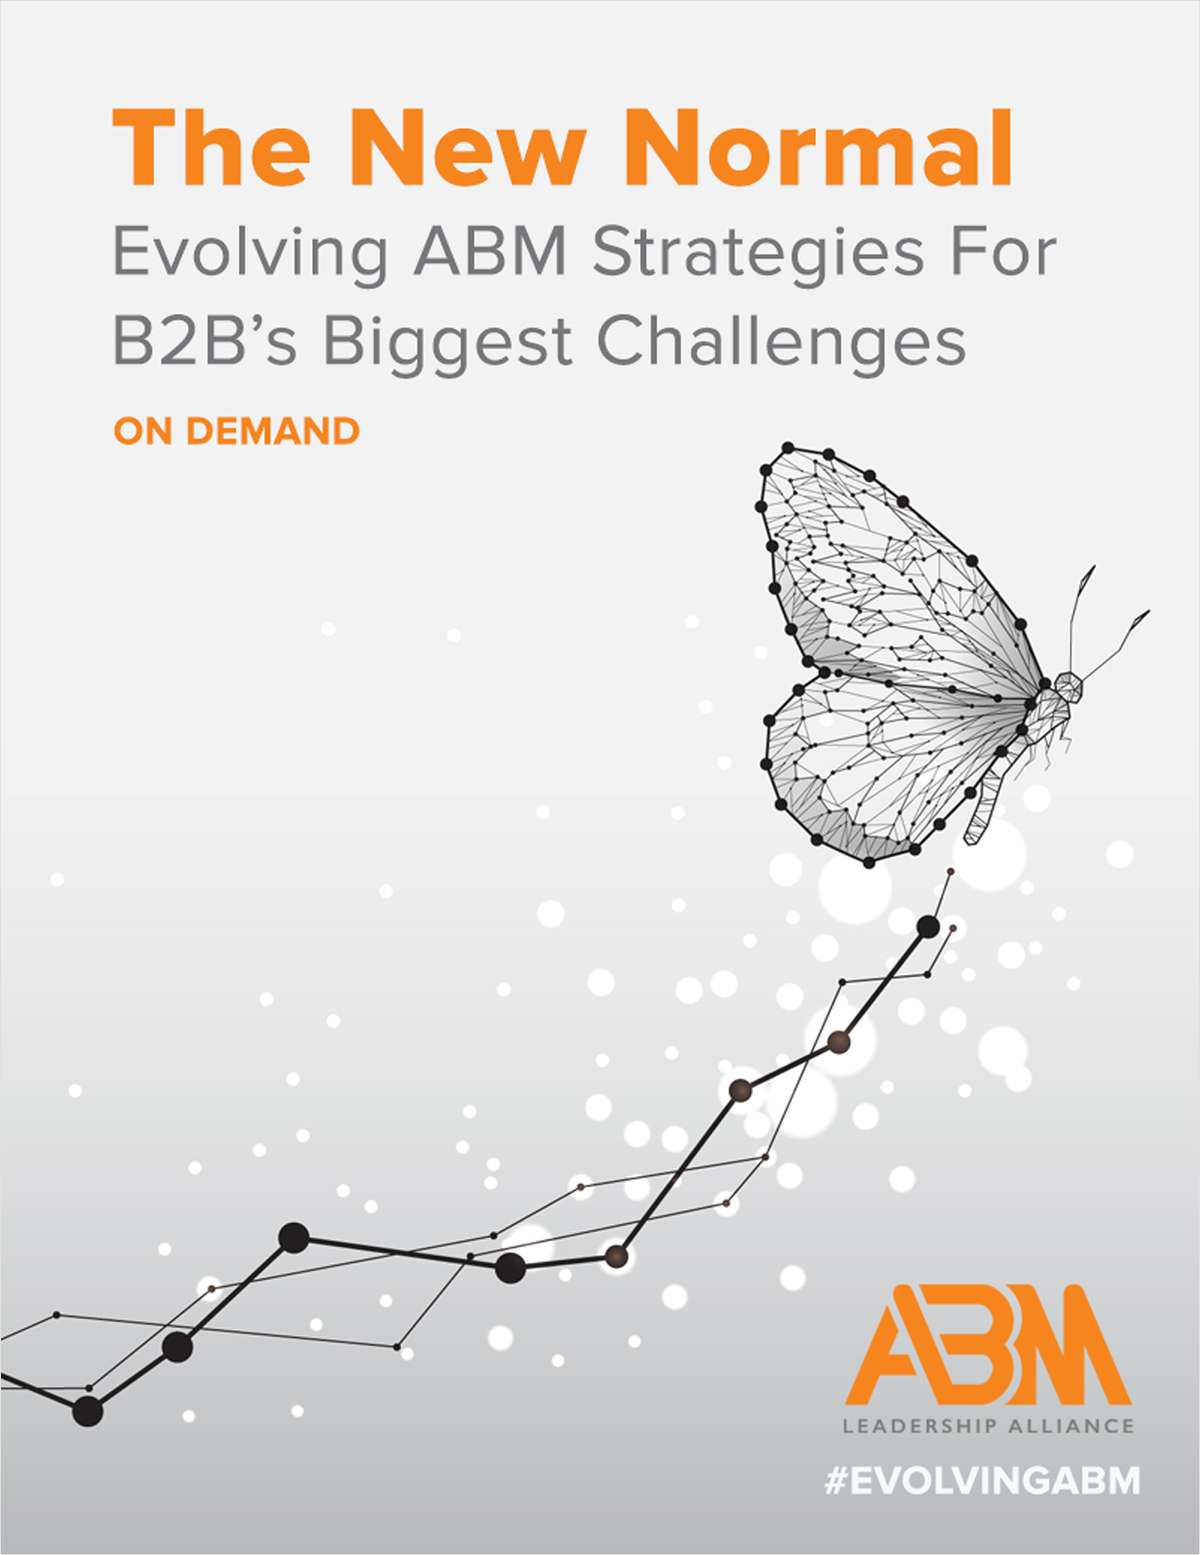 The New Normal: Evolving ABM Strategies for B2B's Biggest Challenges